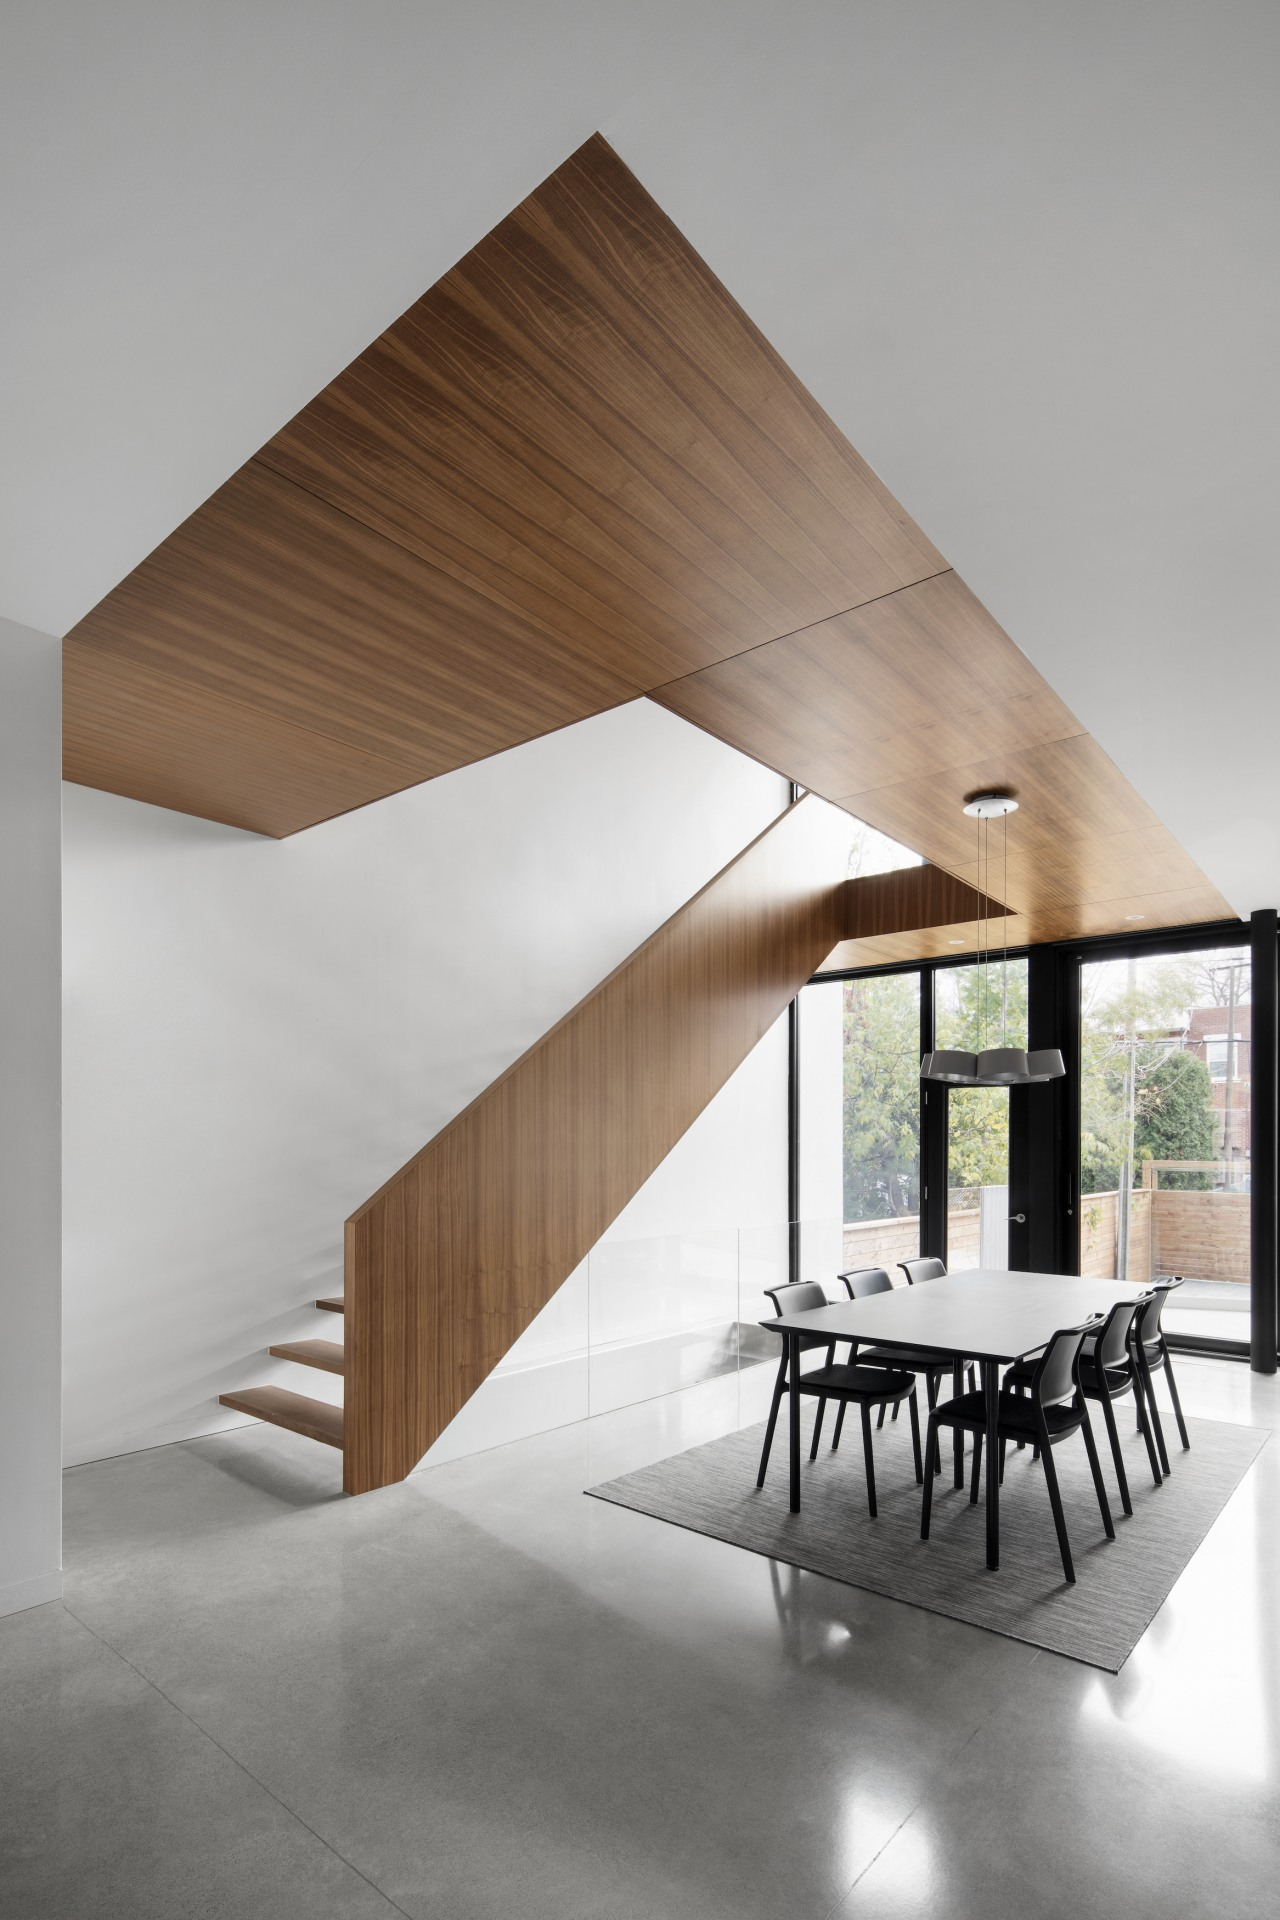 The timber step, riserless staircase is nothing short